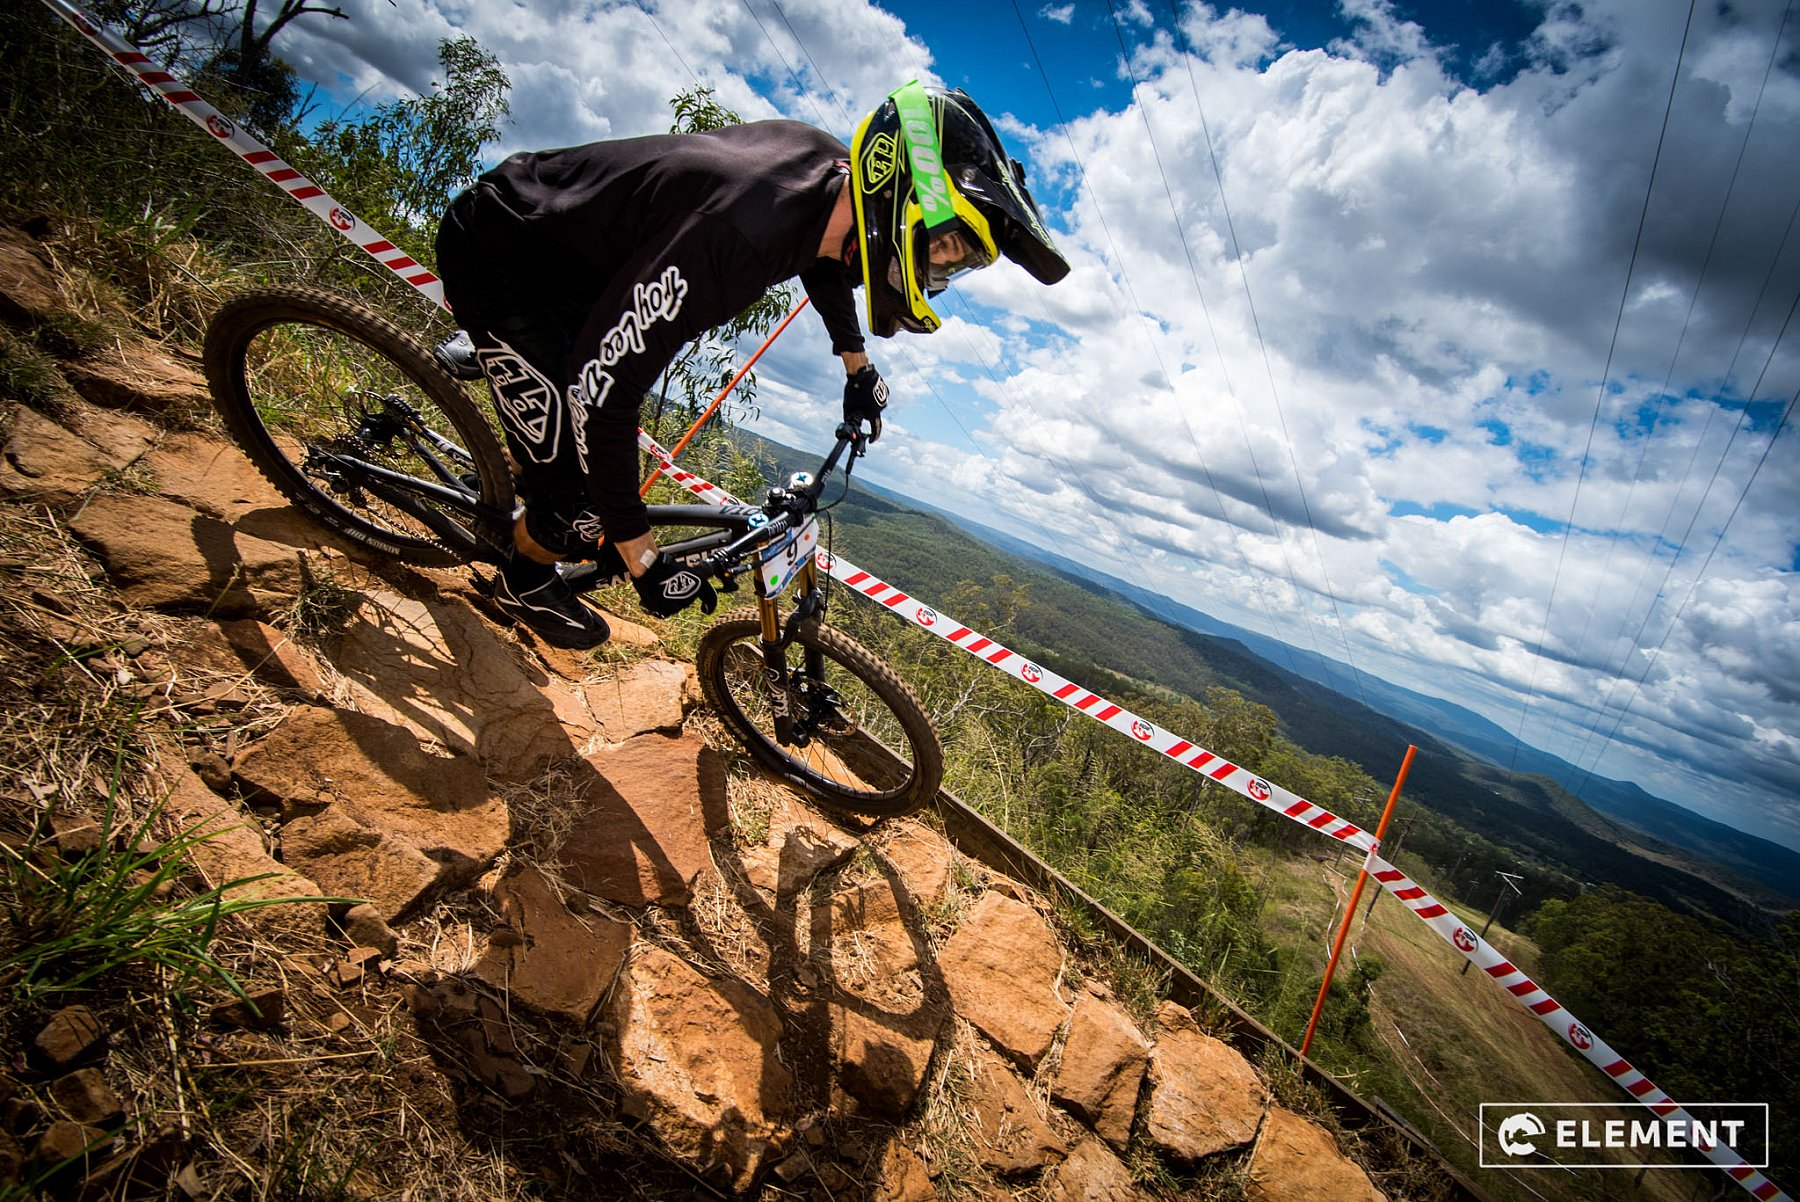 Rider on Toowoomba Range by Element Photo and Video Productions